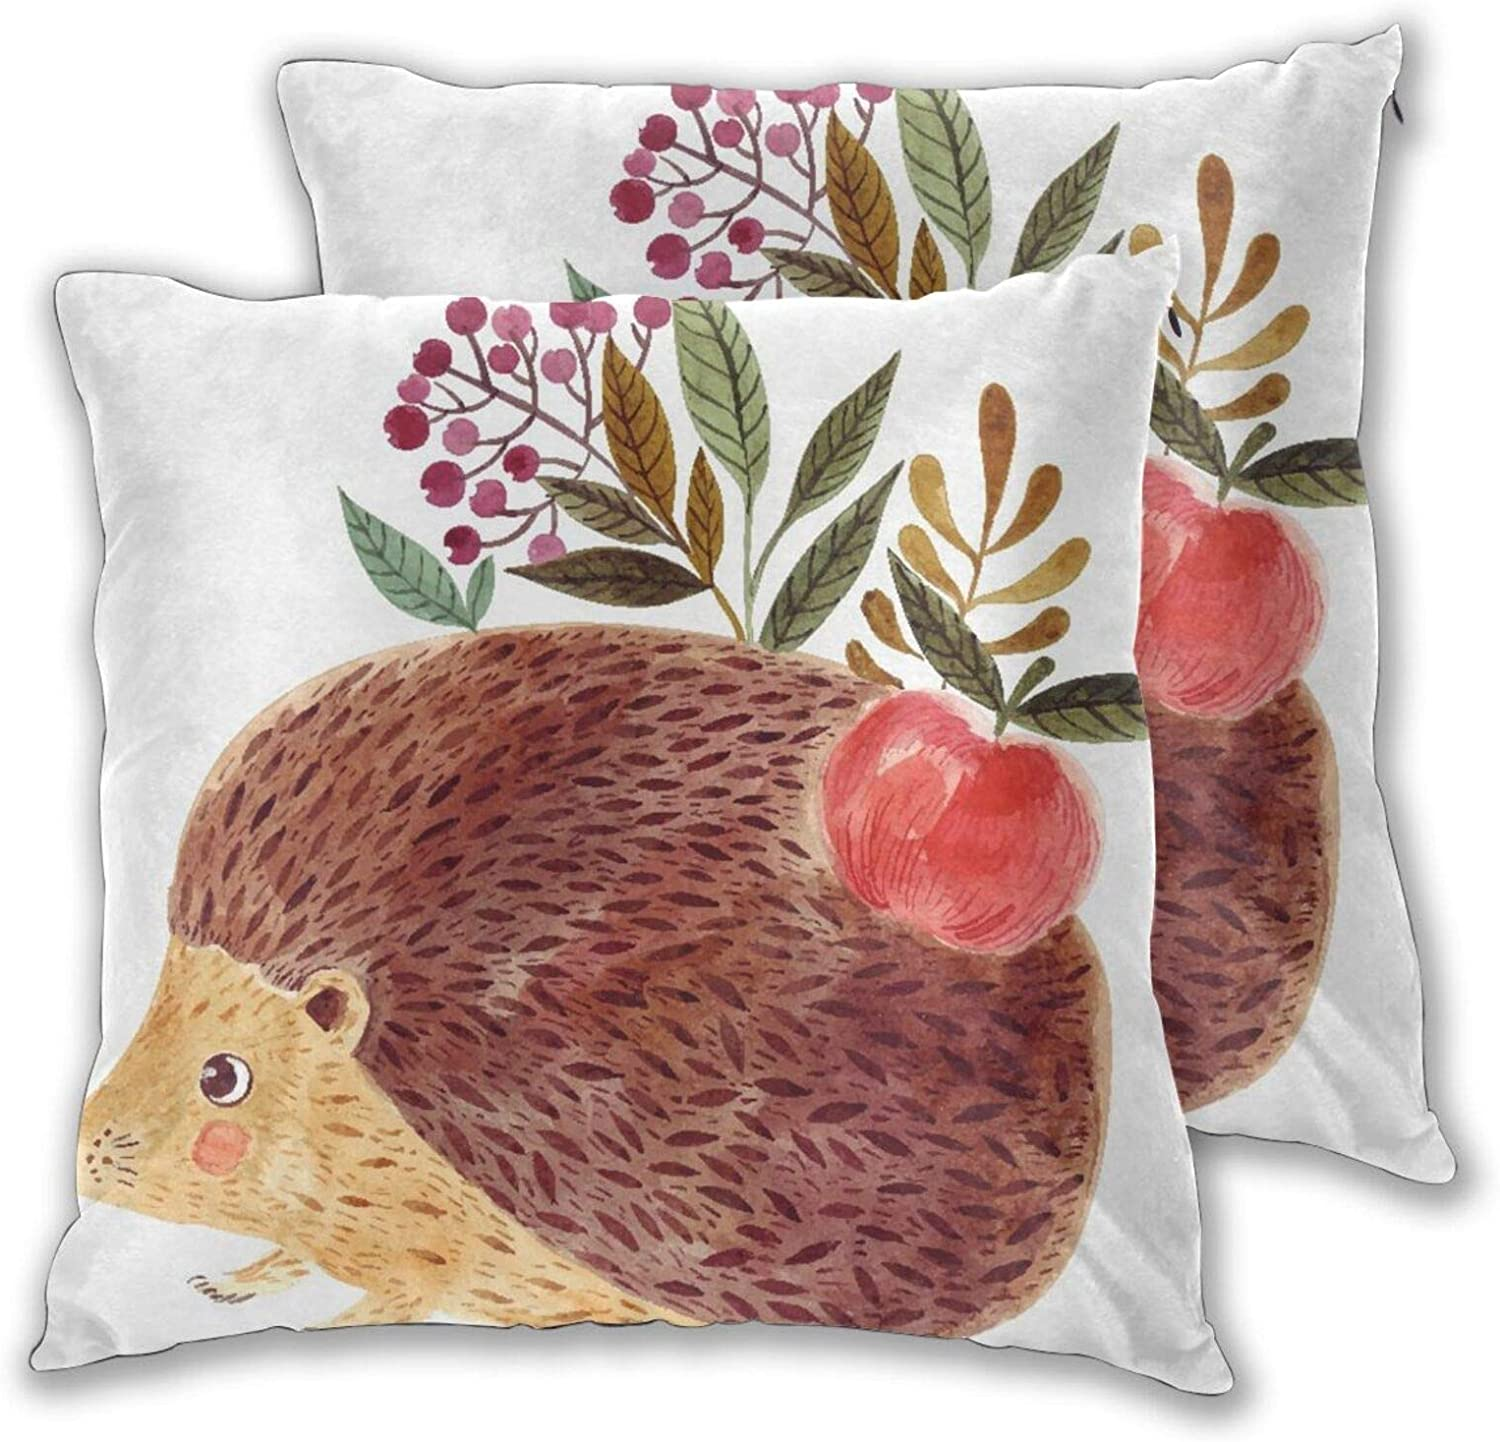 TISAGUER Throw Pillow Ranking TOP20 Covers Set of Illustra Hand Animer and price revision 2 Cute Painted